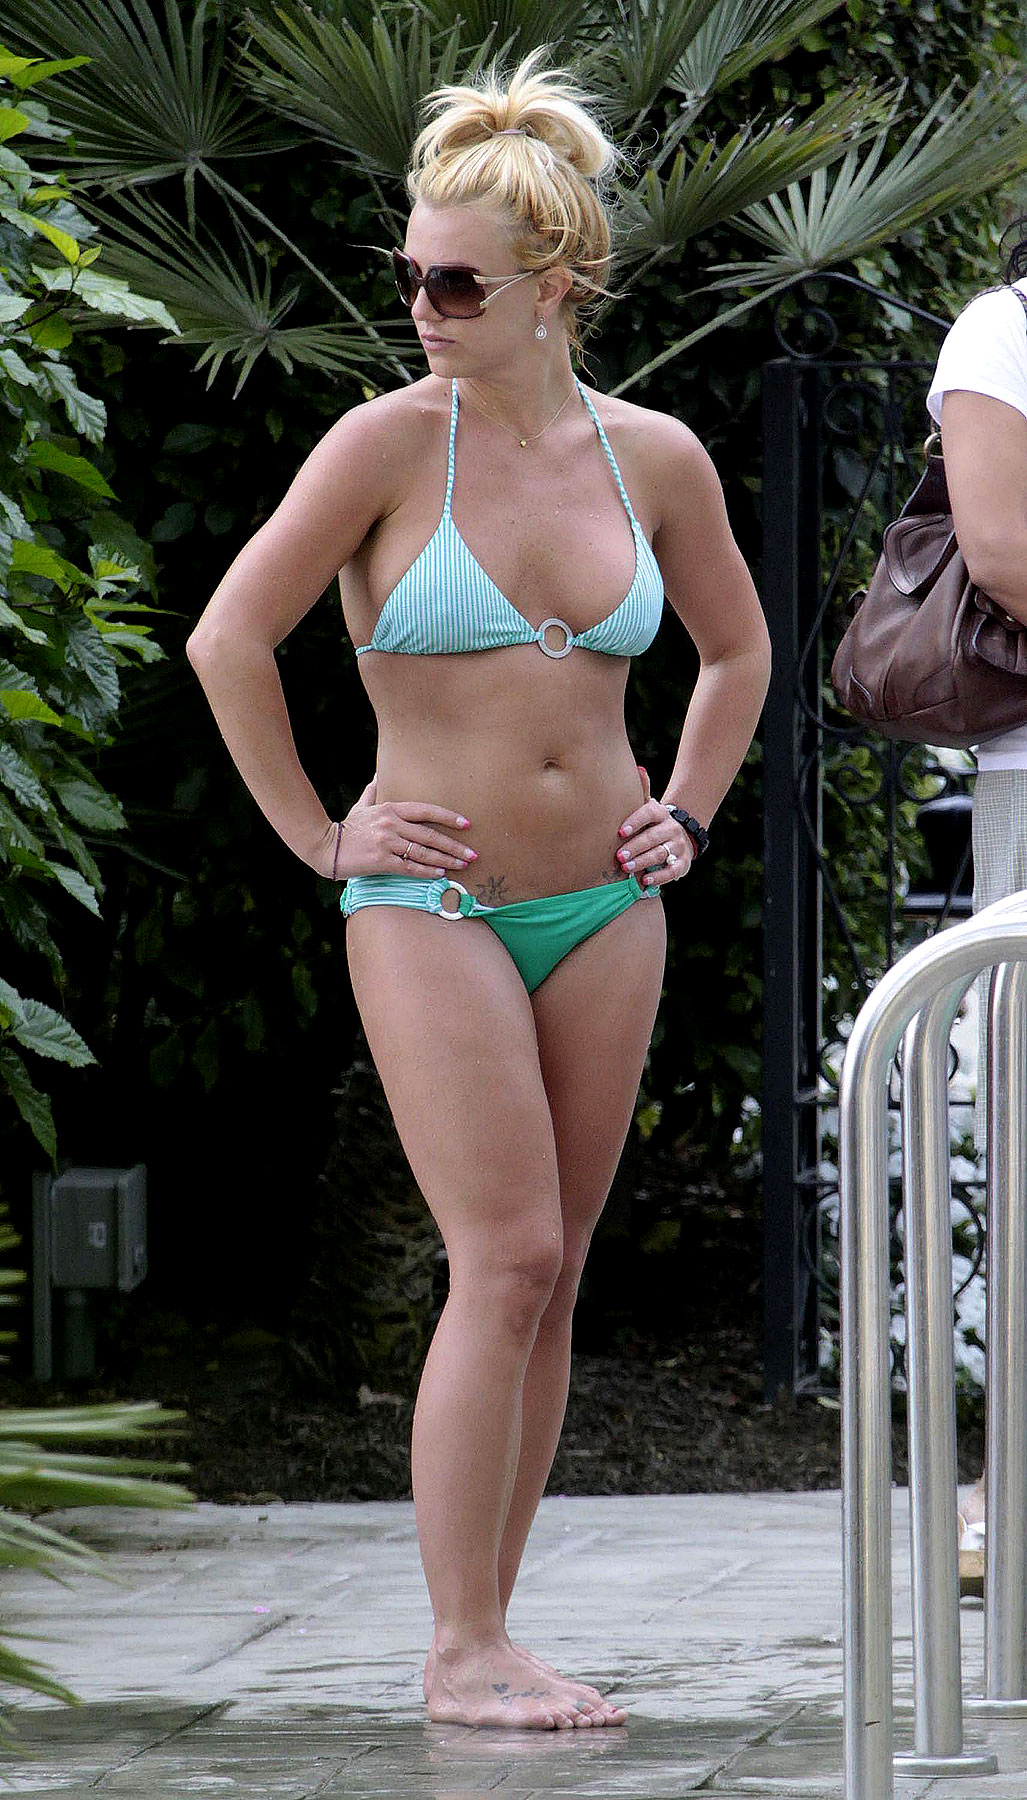 Brittany spears pictures bikini